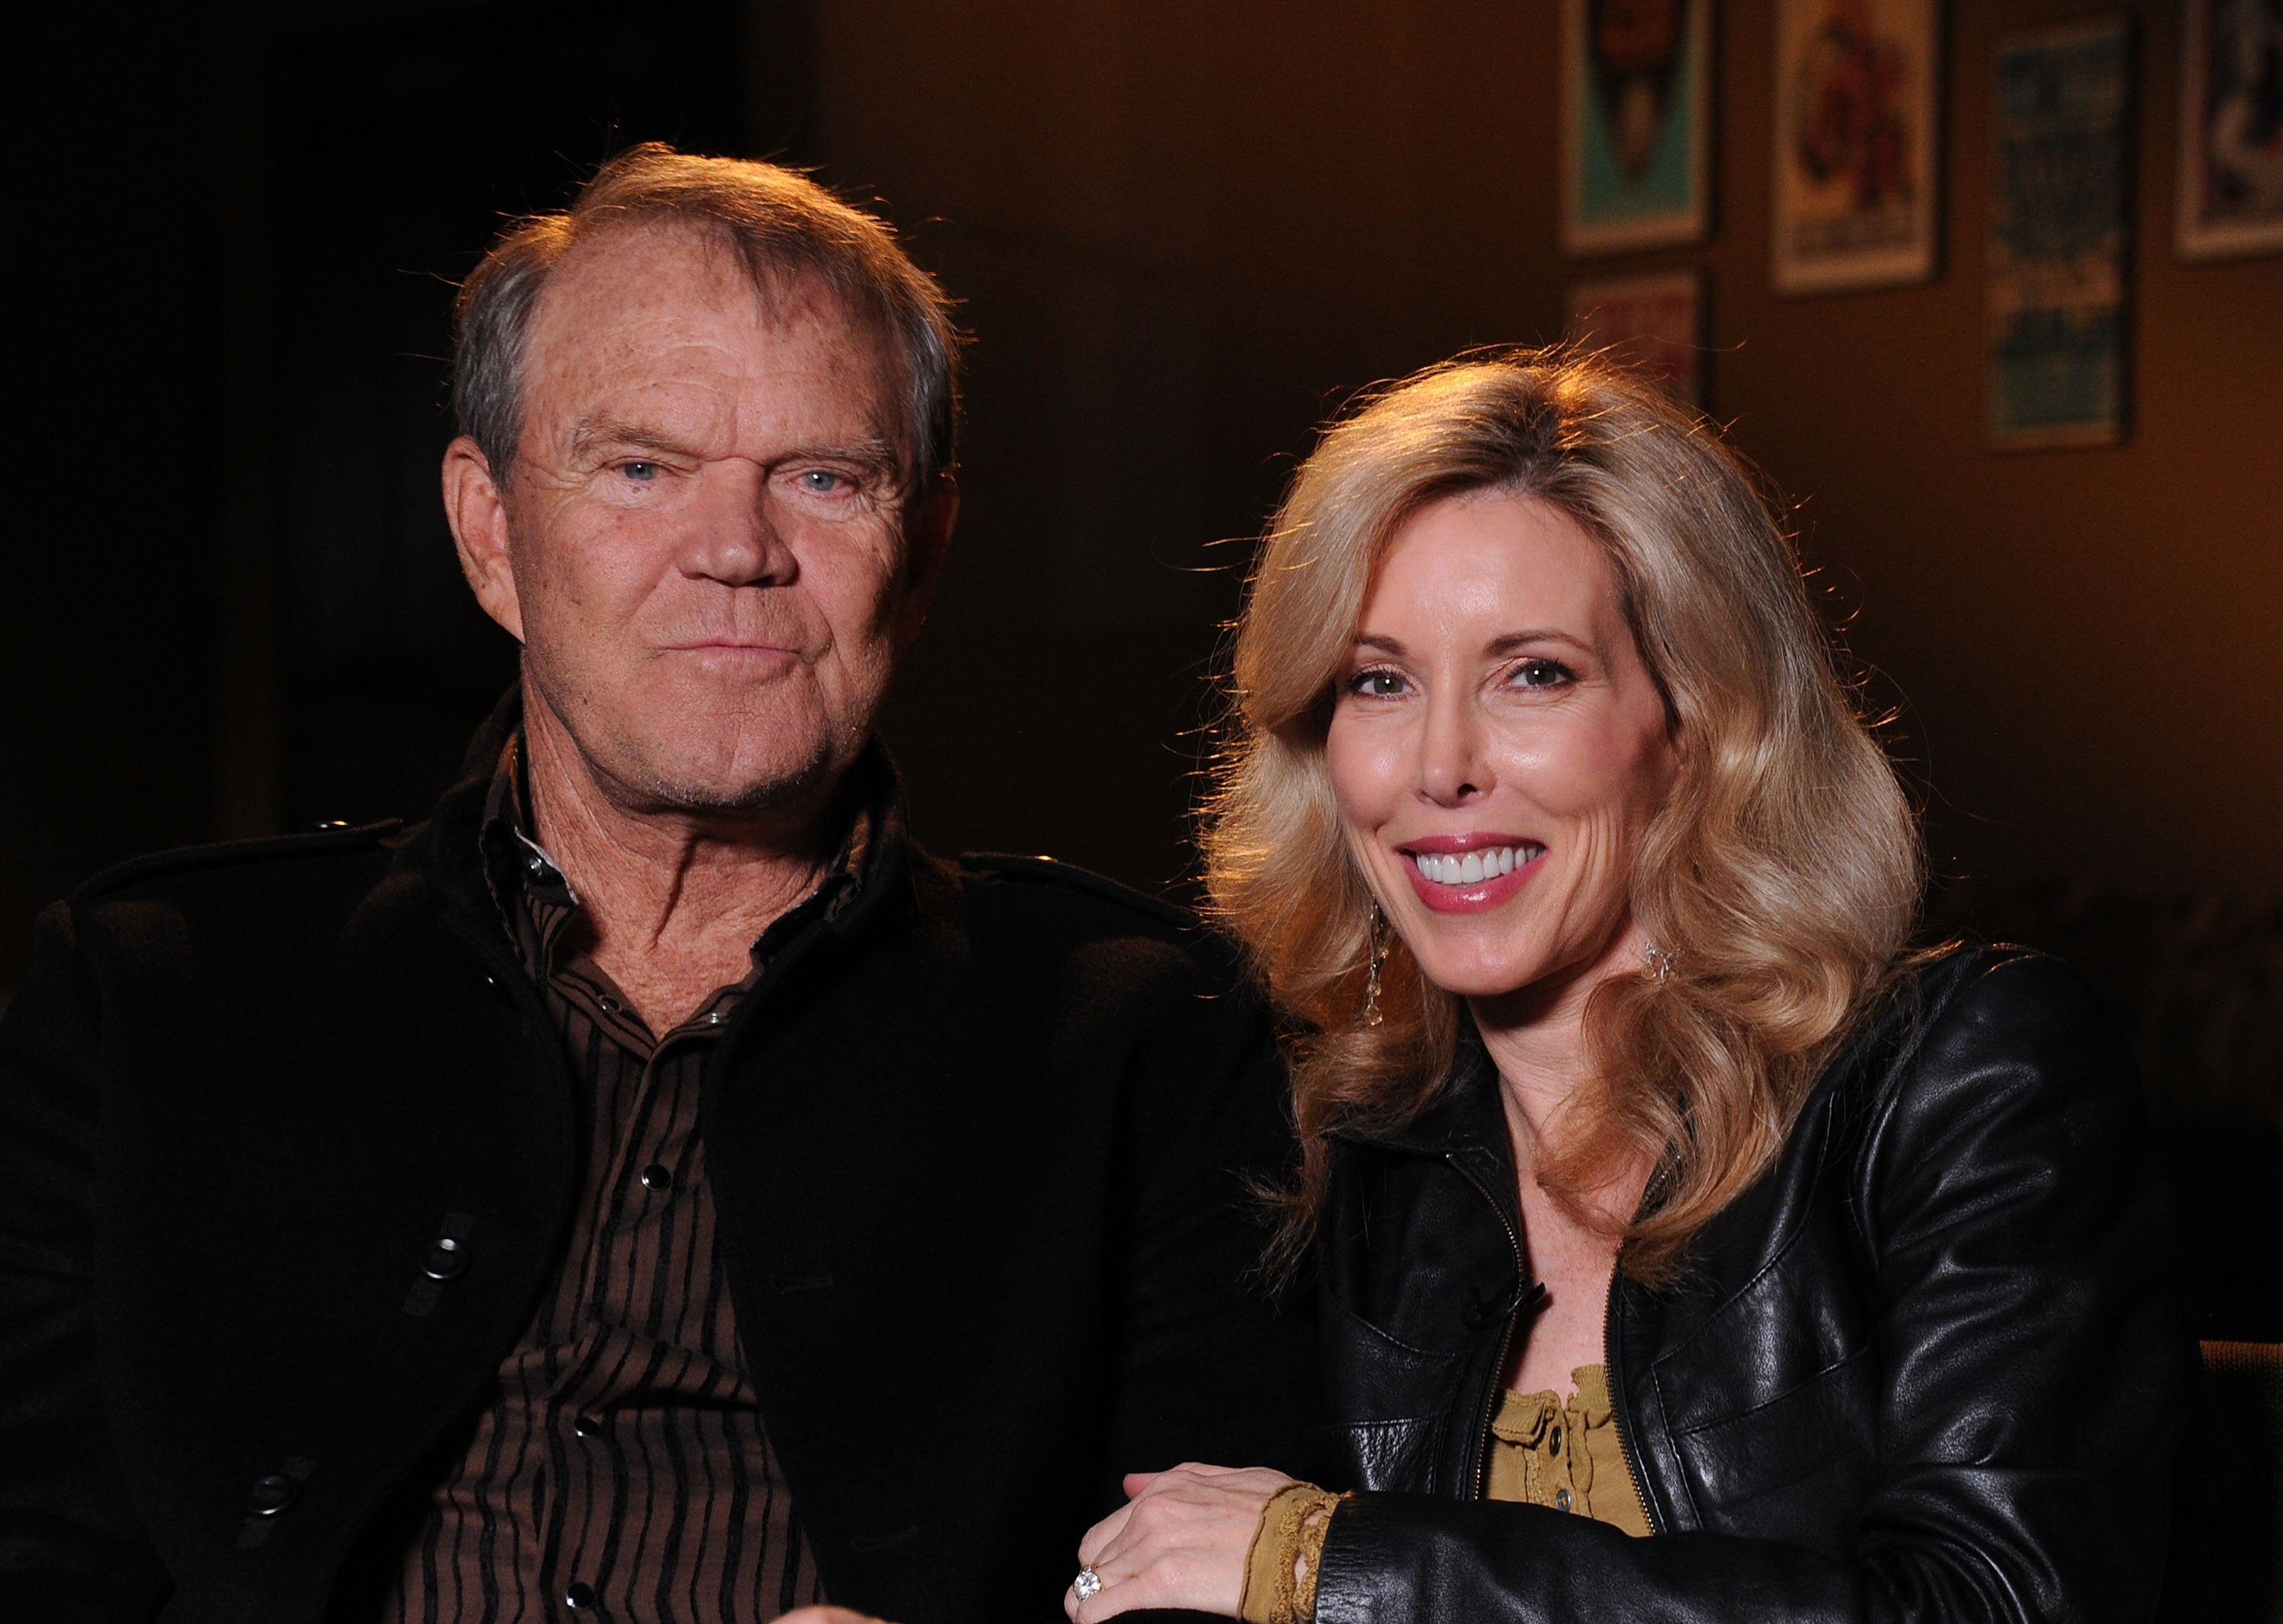 Glen Campbell and Kim Woollen in an interview with CMT  on September 19, 2011 | Photo: GettyImages